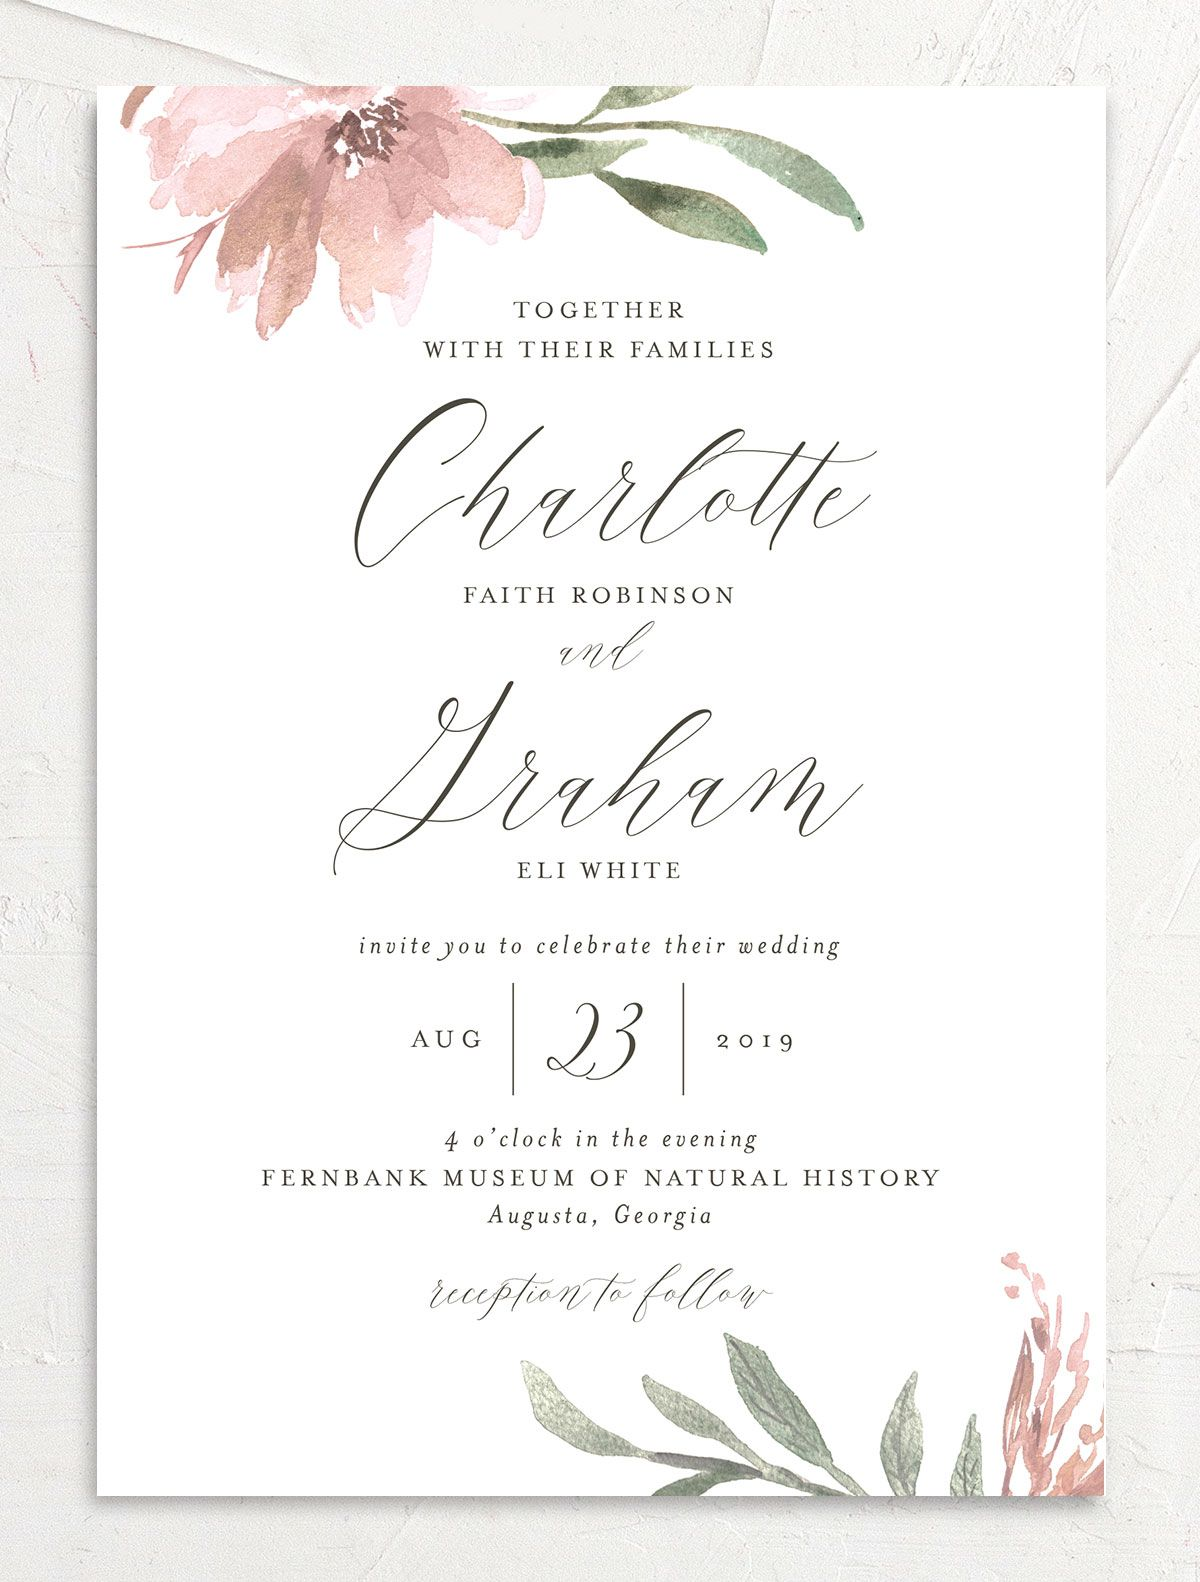 muted floral wedding invitations in blush pink